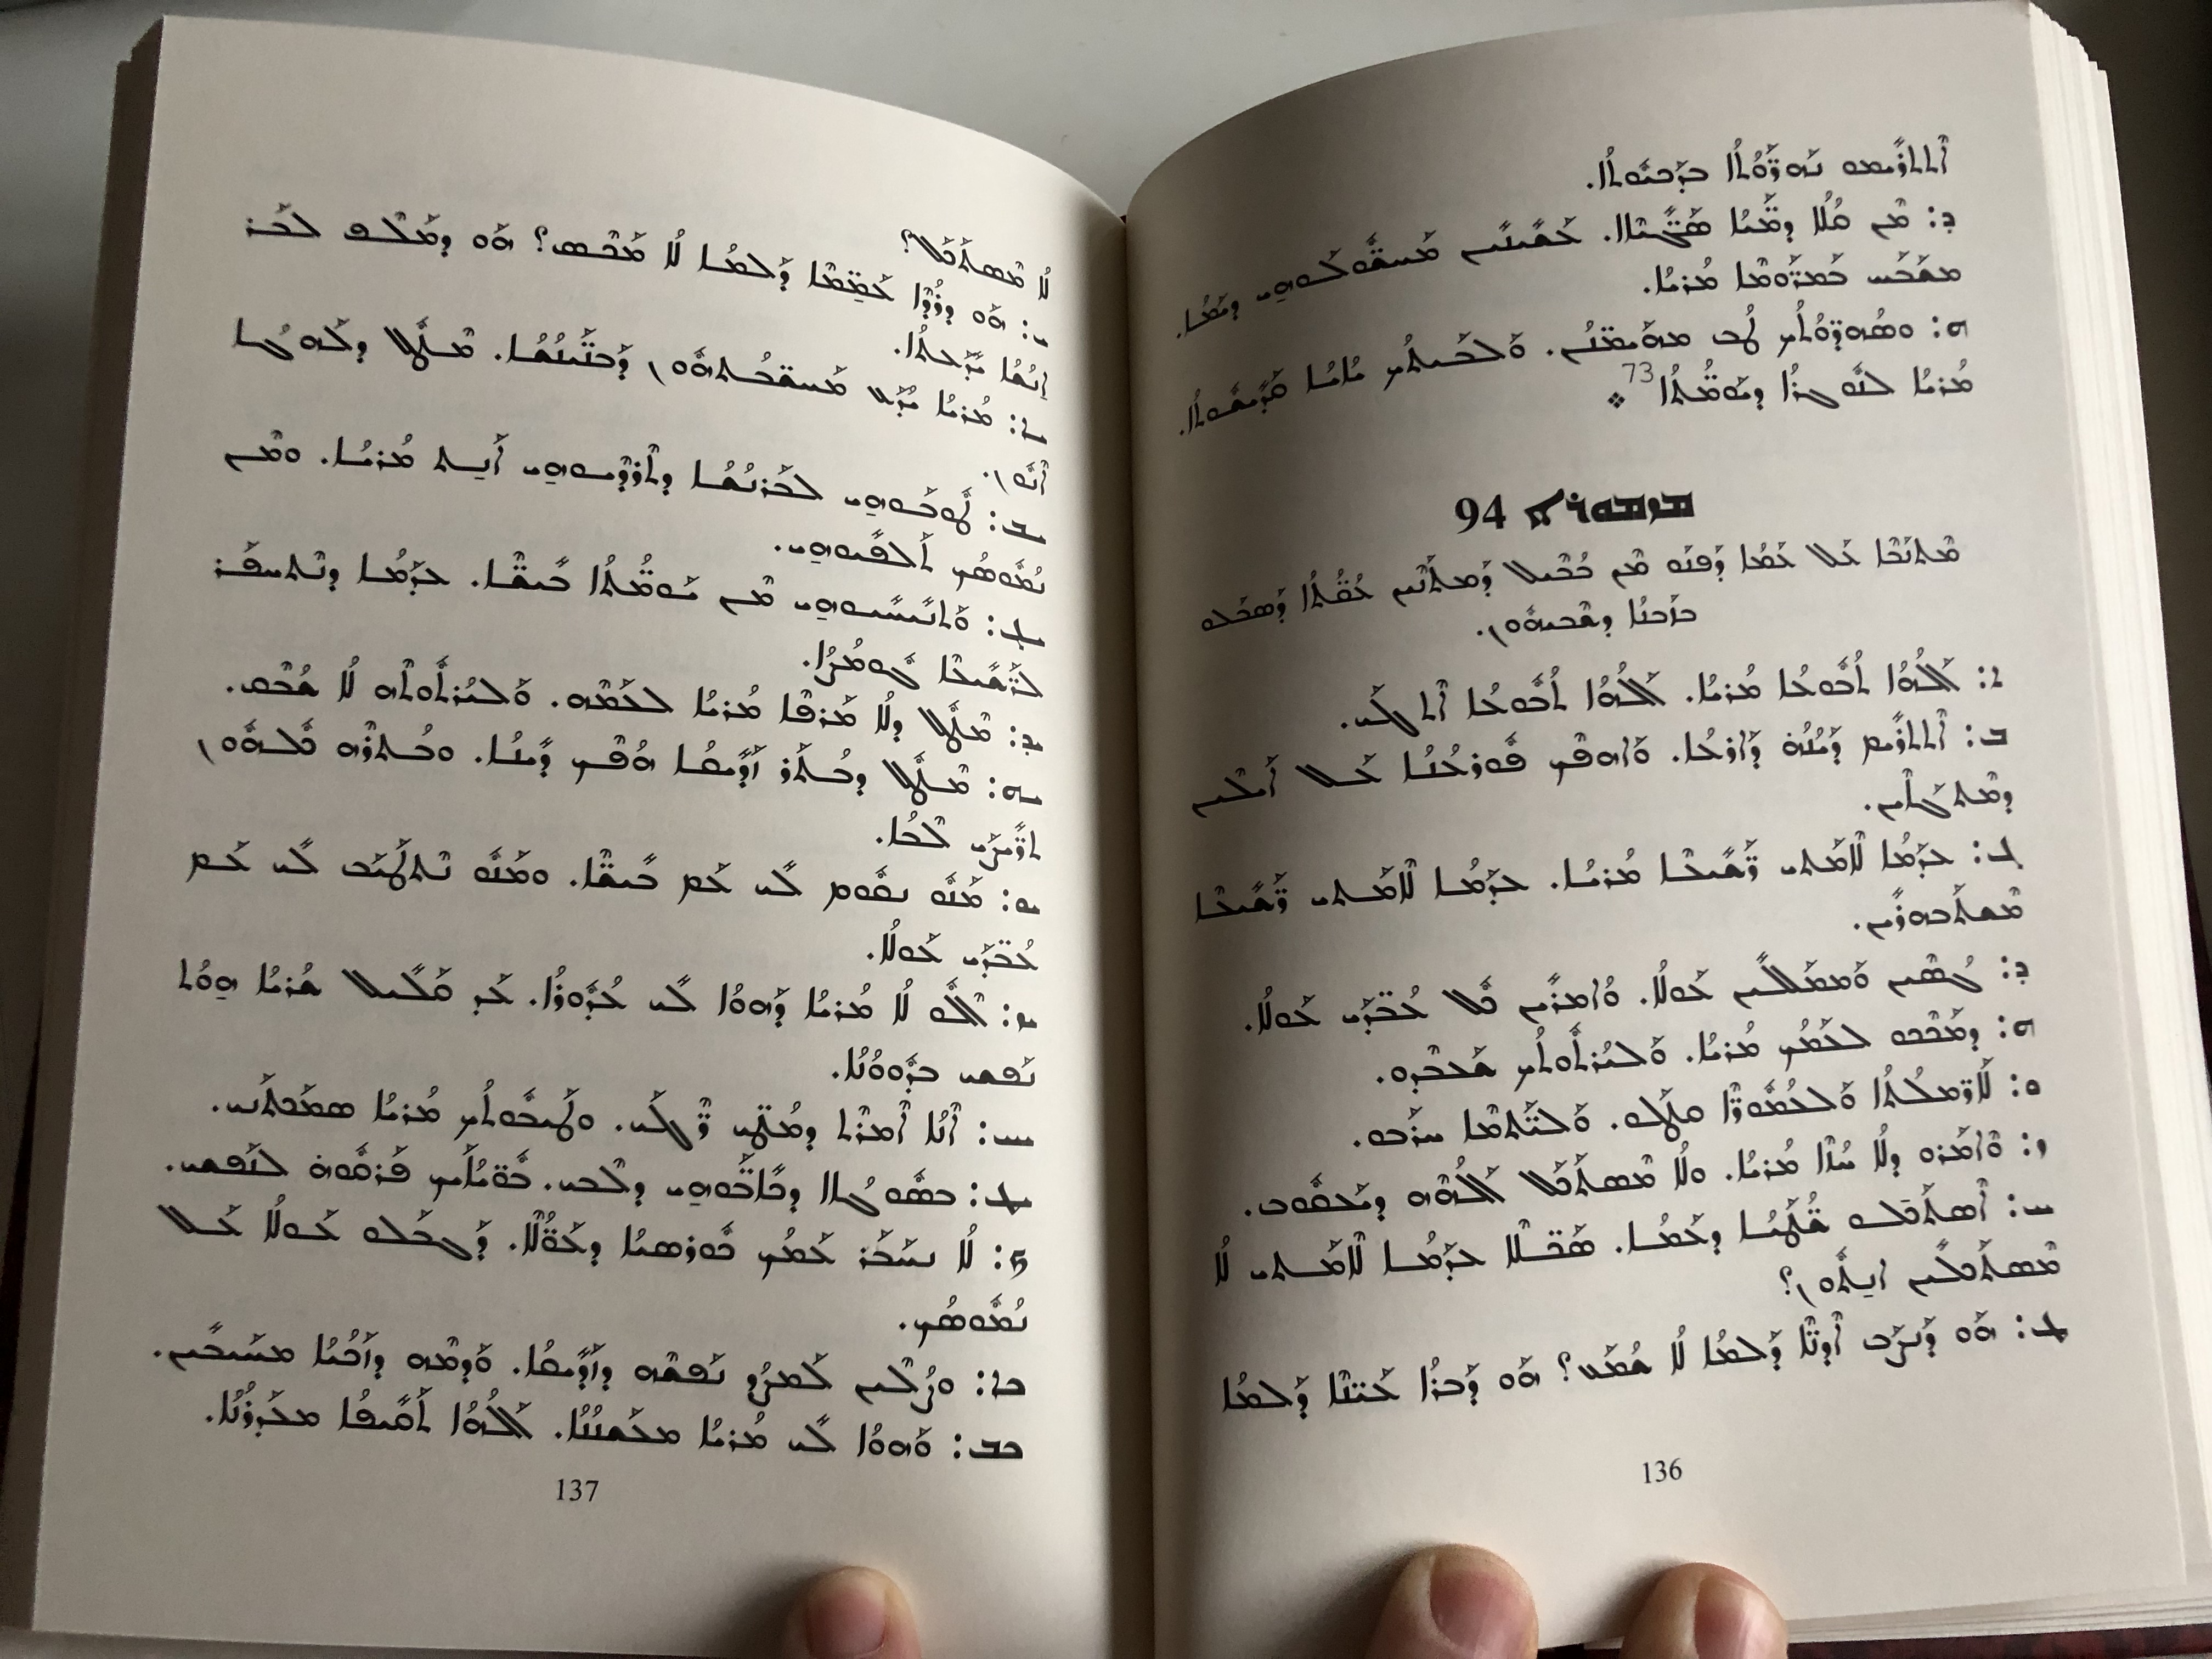 the-book-of-psalms-in-syriac-language-with-english-and-turkish-introduction-hardcover-14-.jpg